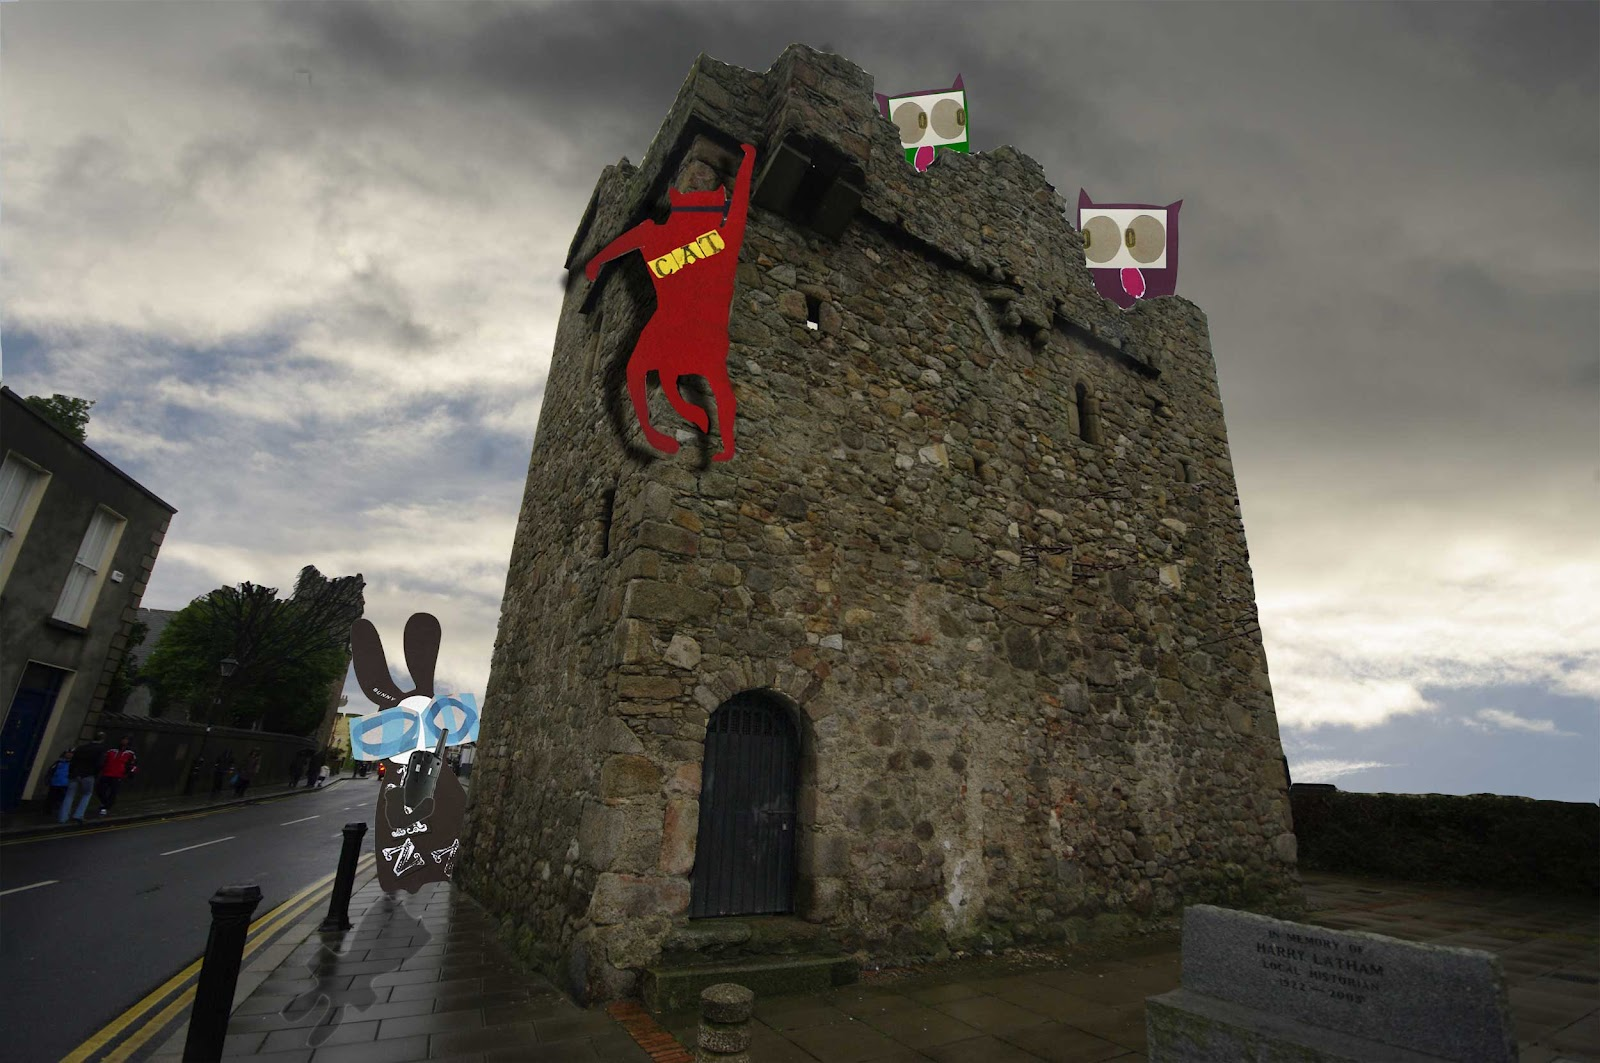 http://3.bp.blogspot.com/-V0KtBn9z3nw/TzVjflktECI/AAAAAAAABIU/BMrczAfhpps/s1600/wabbit-and-the-irish-castle.jpg